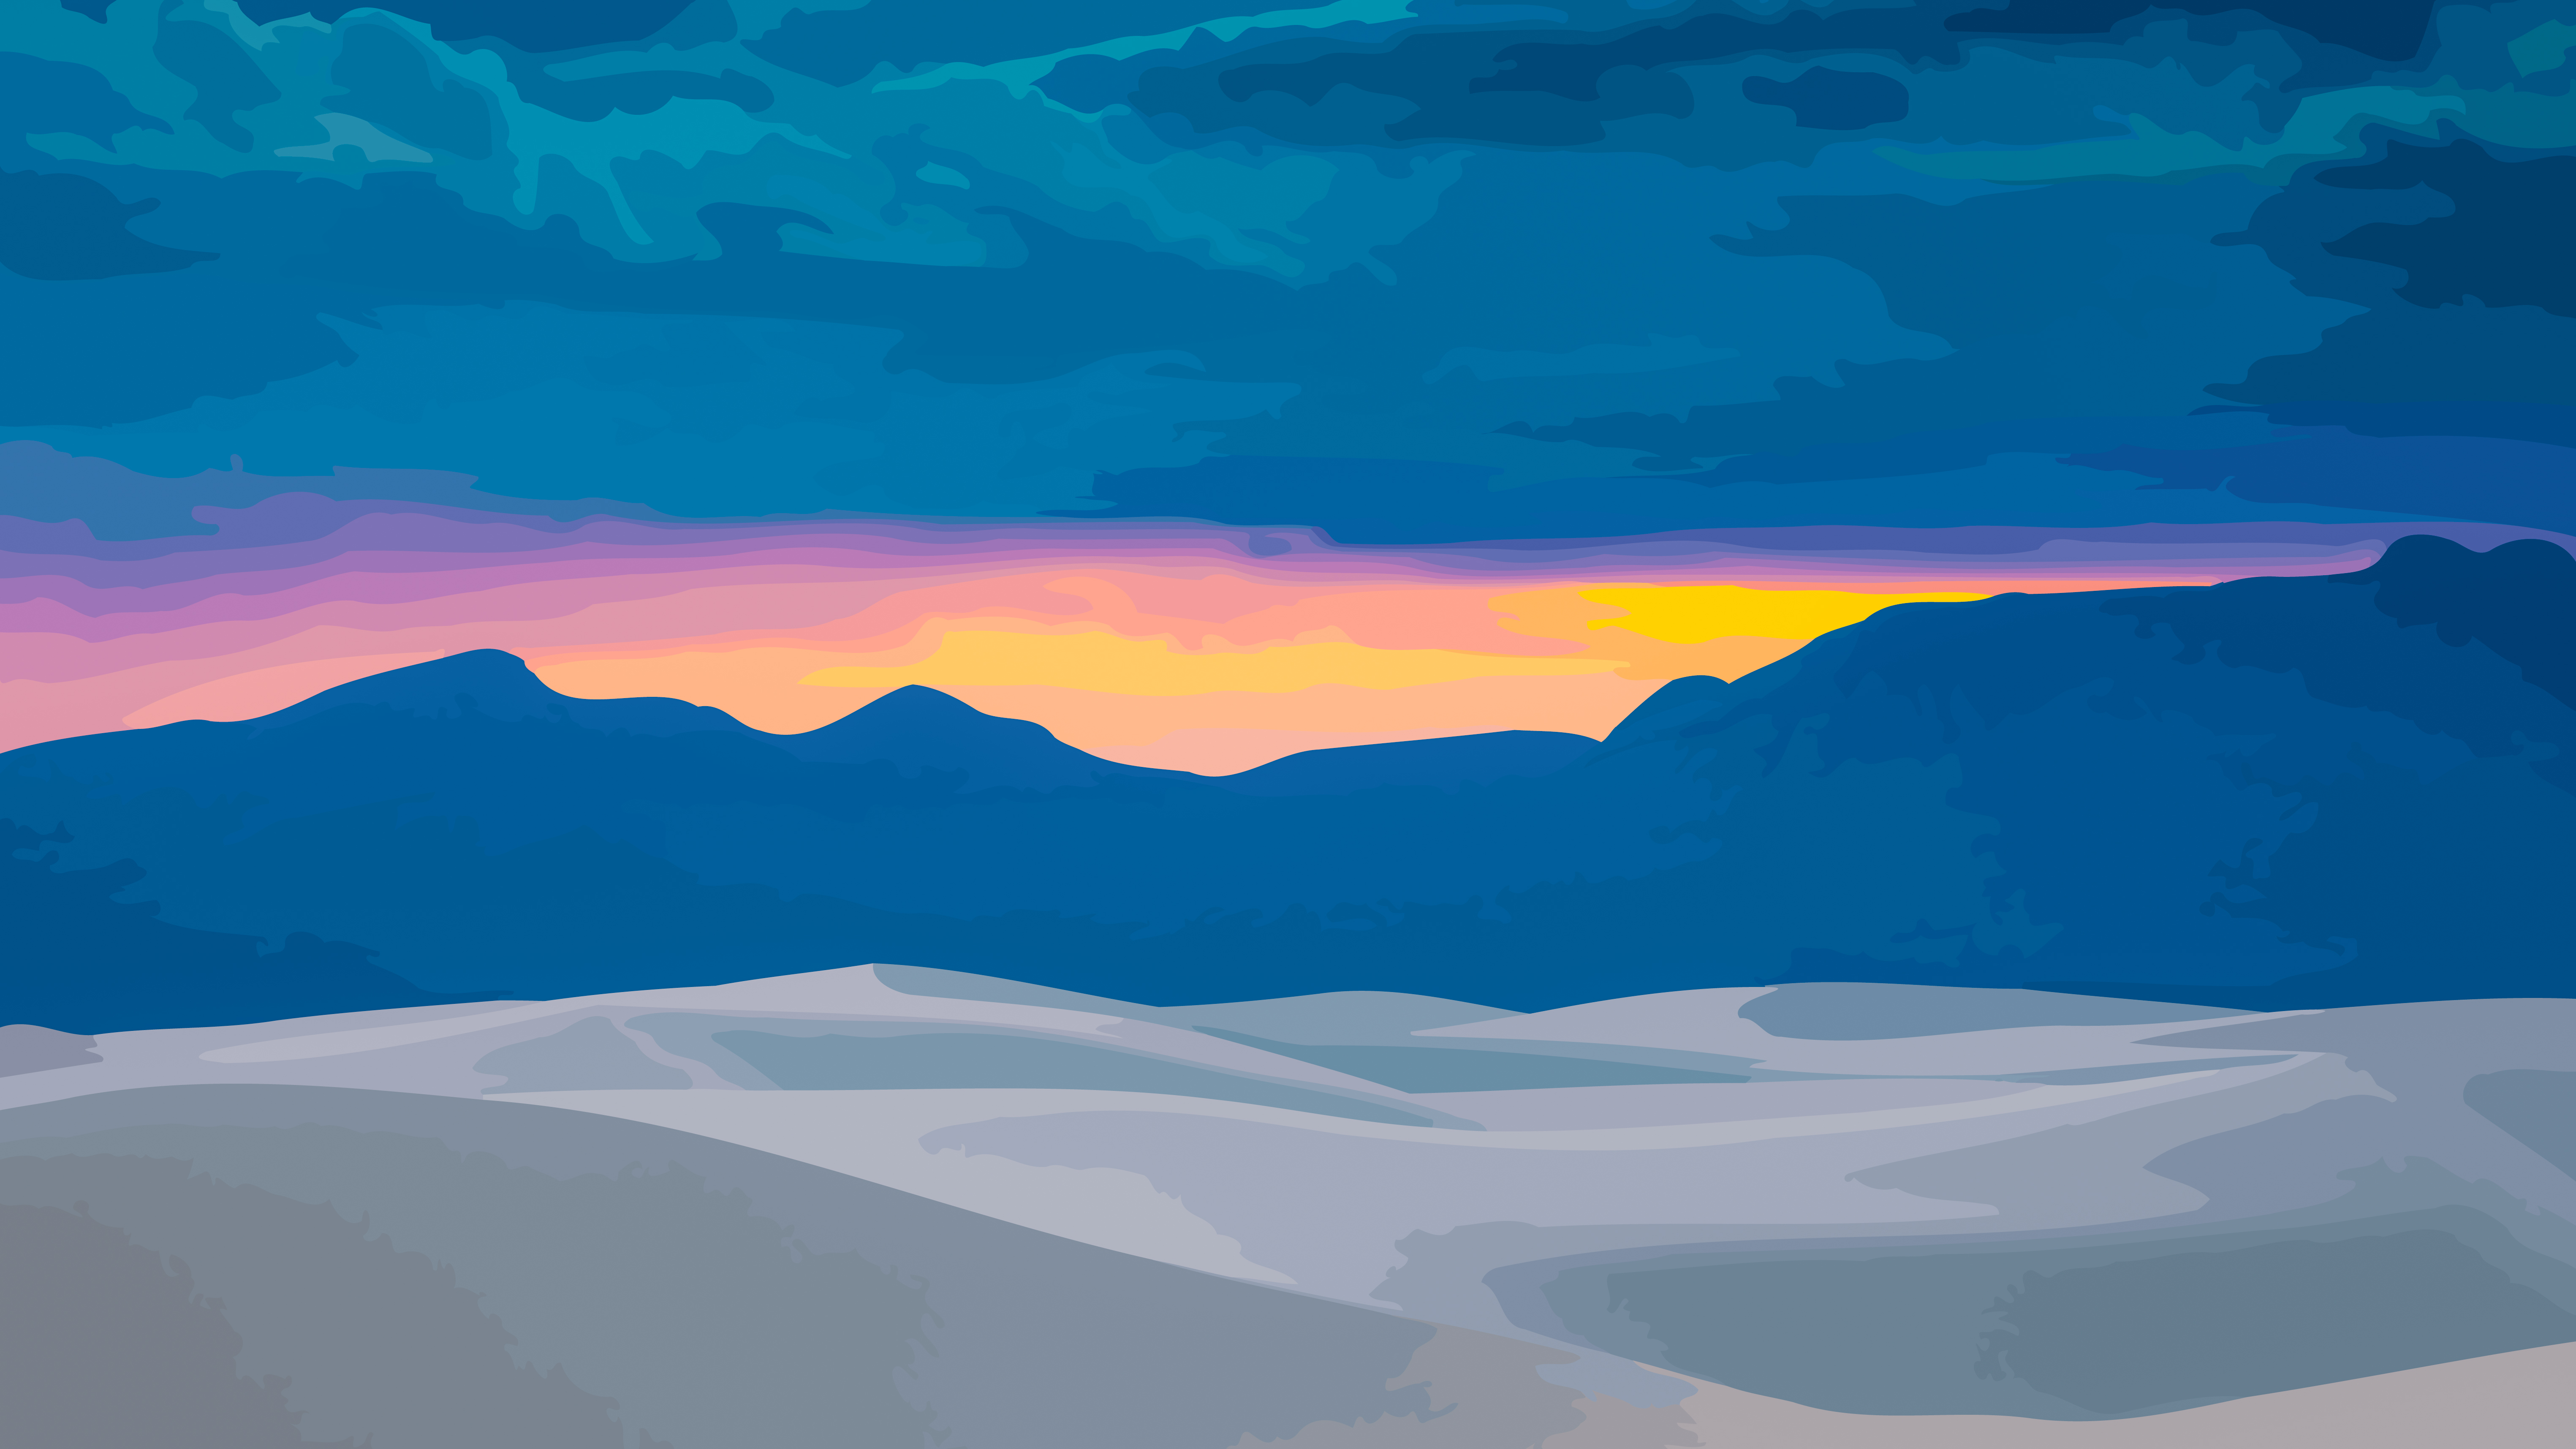 vector landscape wallpaper by WALLSBYJFL idownloadblog color sunset desktop